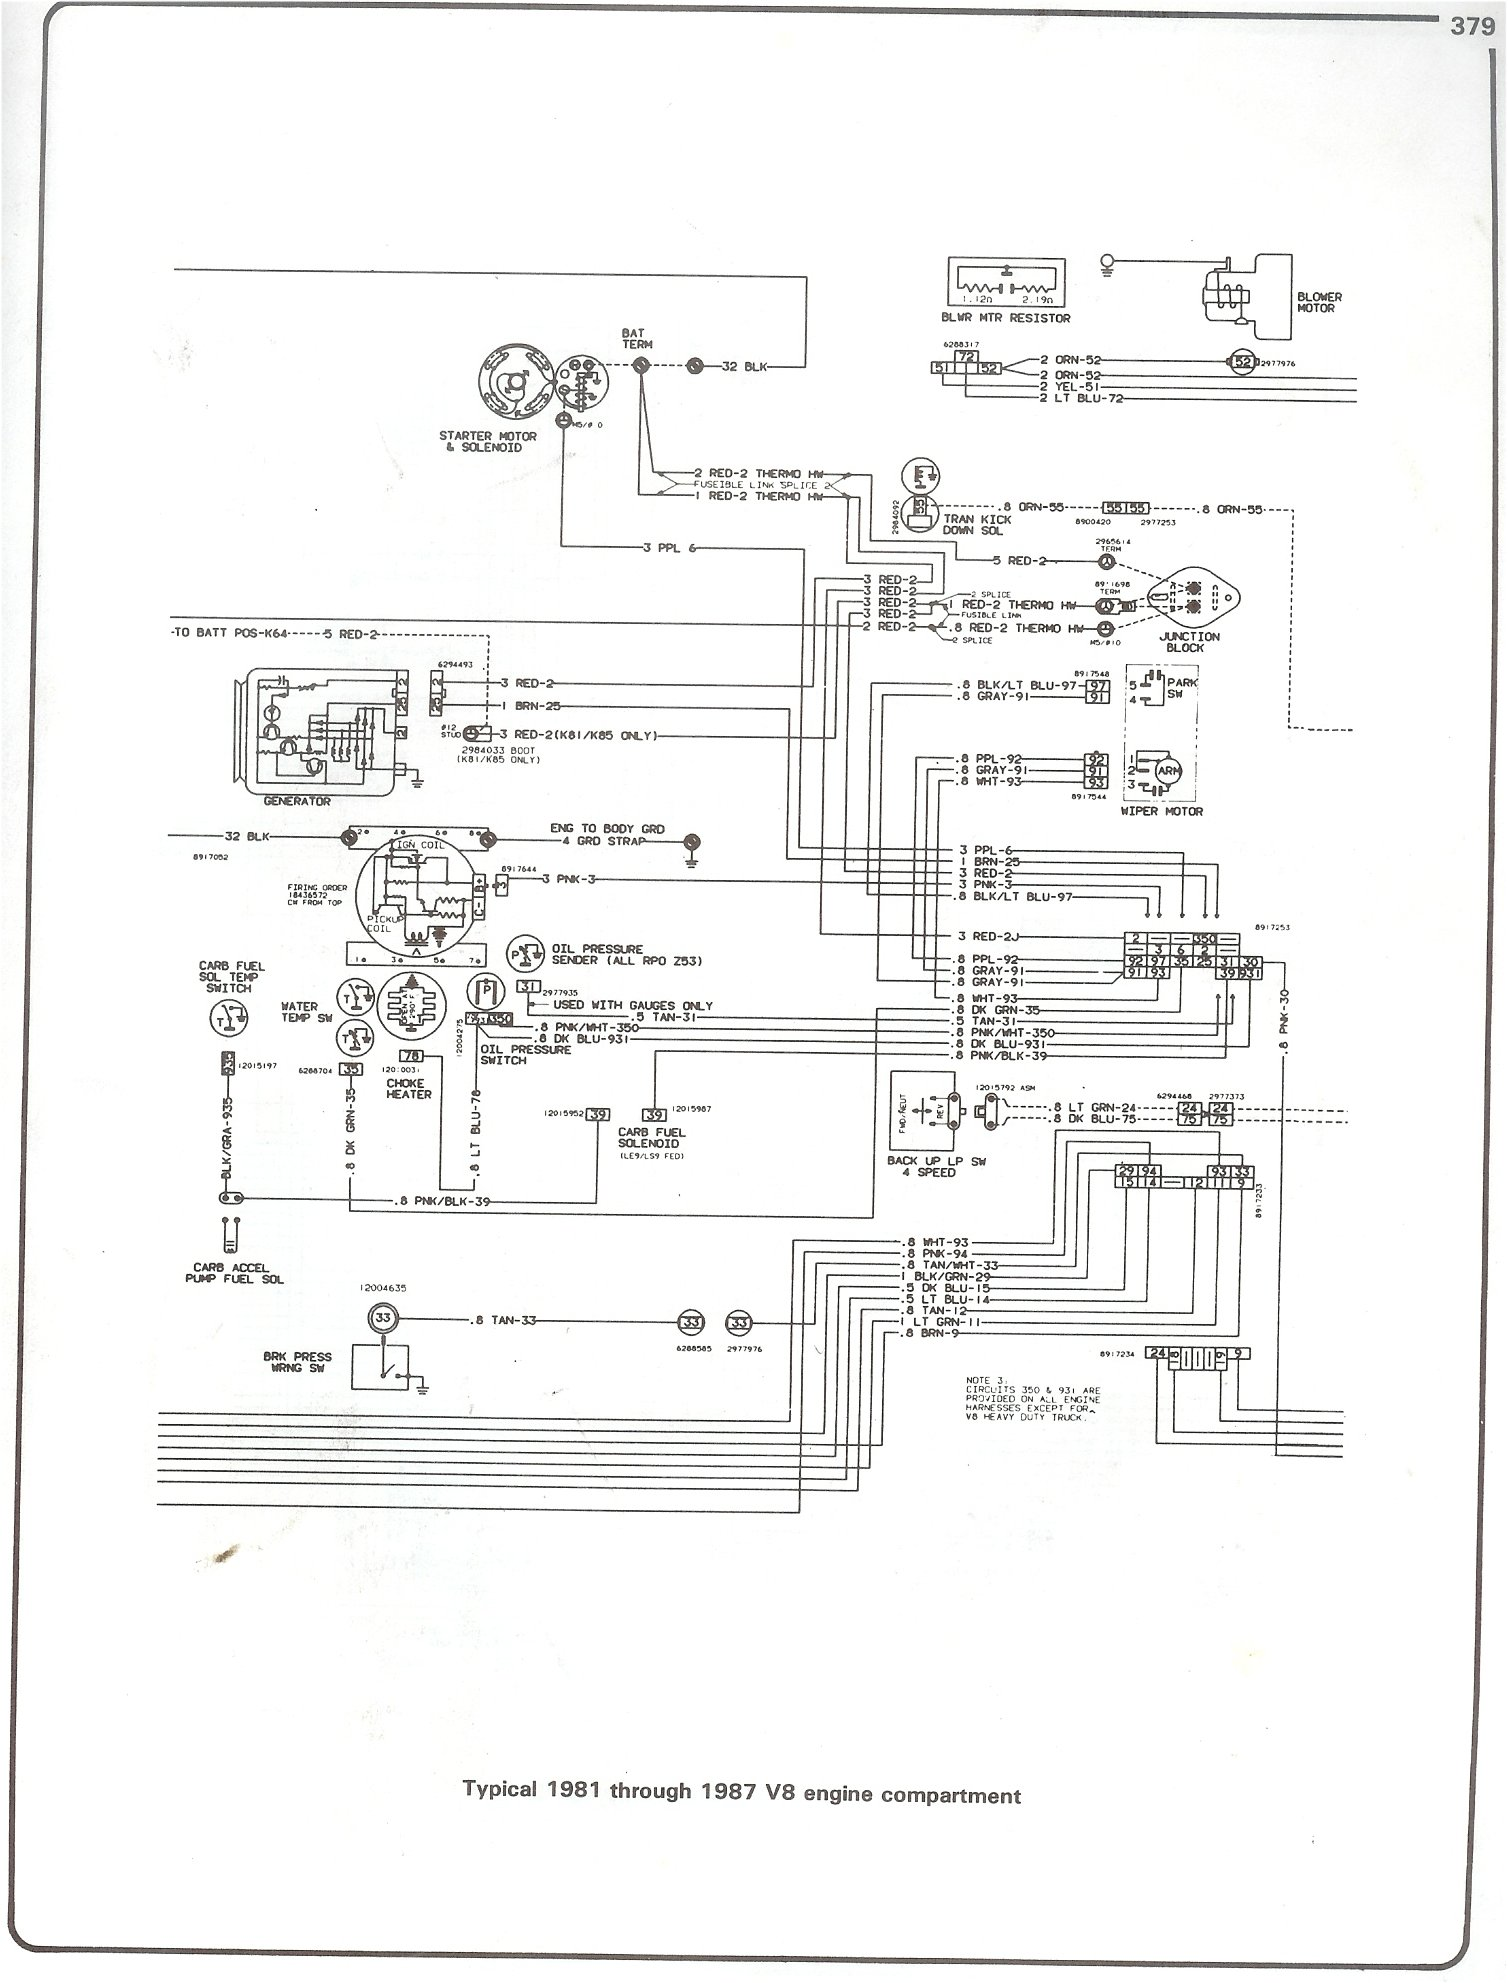 81 87_V8_engine complete 73 87 wiring diagrams Chevy Express 2500 Wiring Diagram at n-0.co